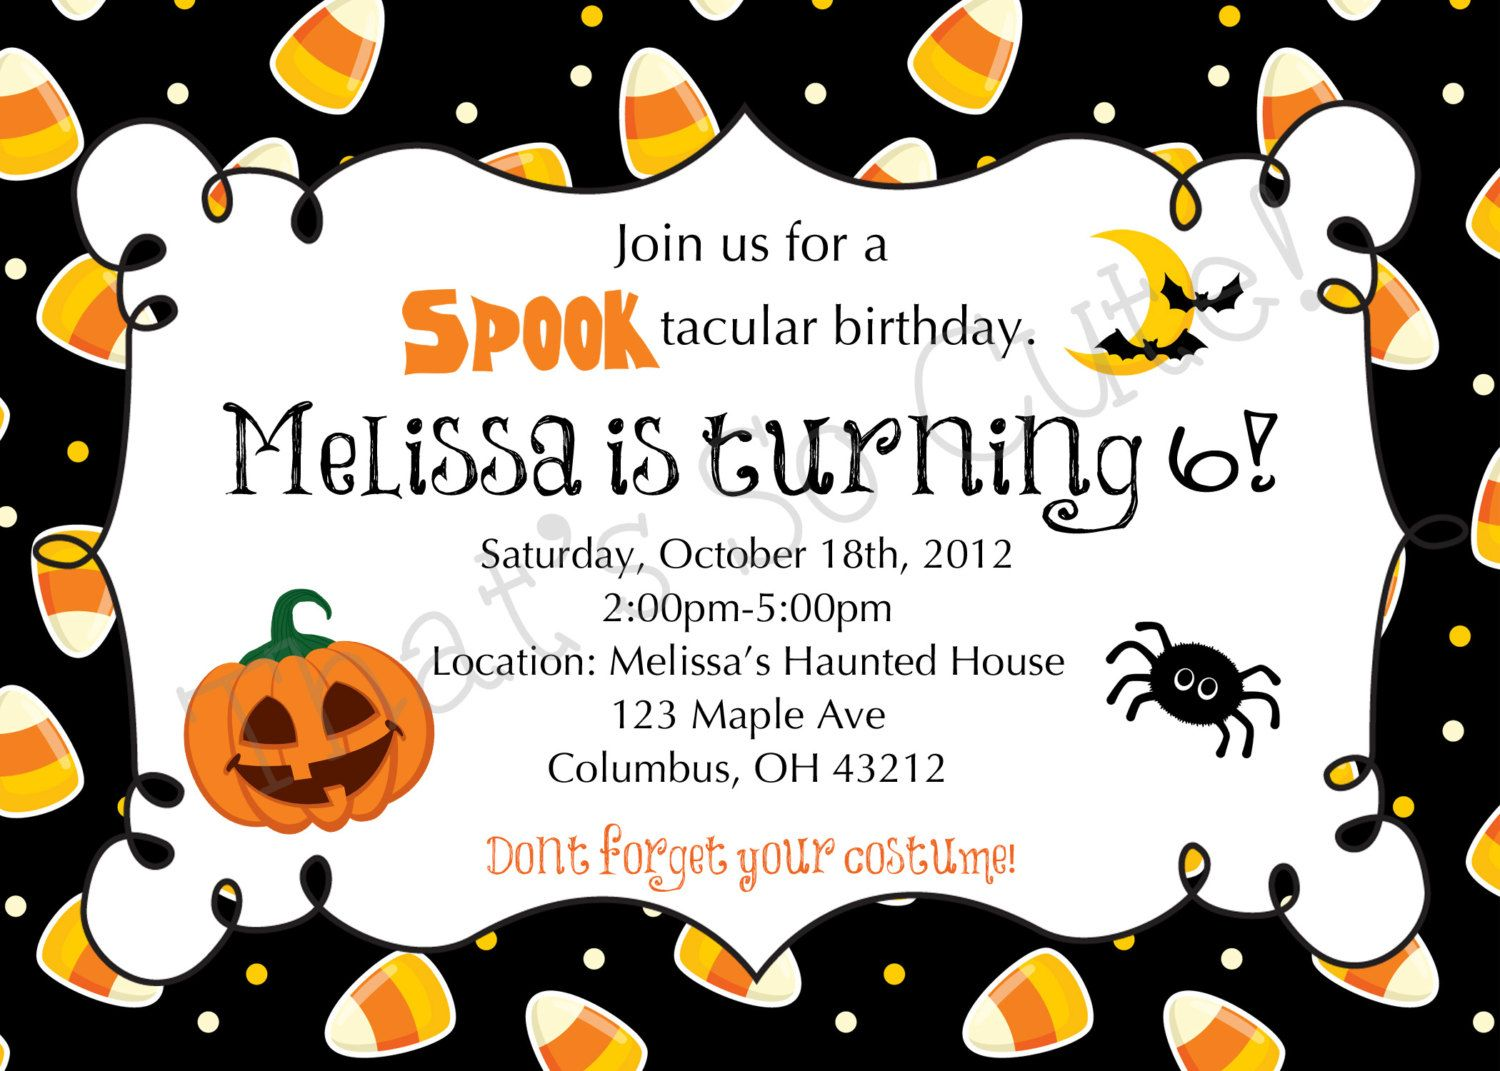 photograph relating to Printable Halloween Birthday Invitations identified as Down load Cost-free Template Cost-free Printable Halloween Birthday